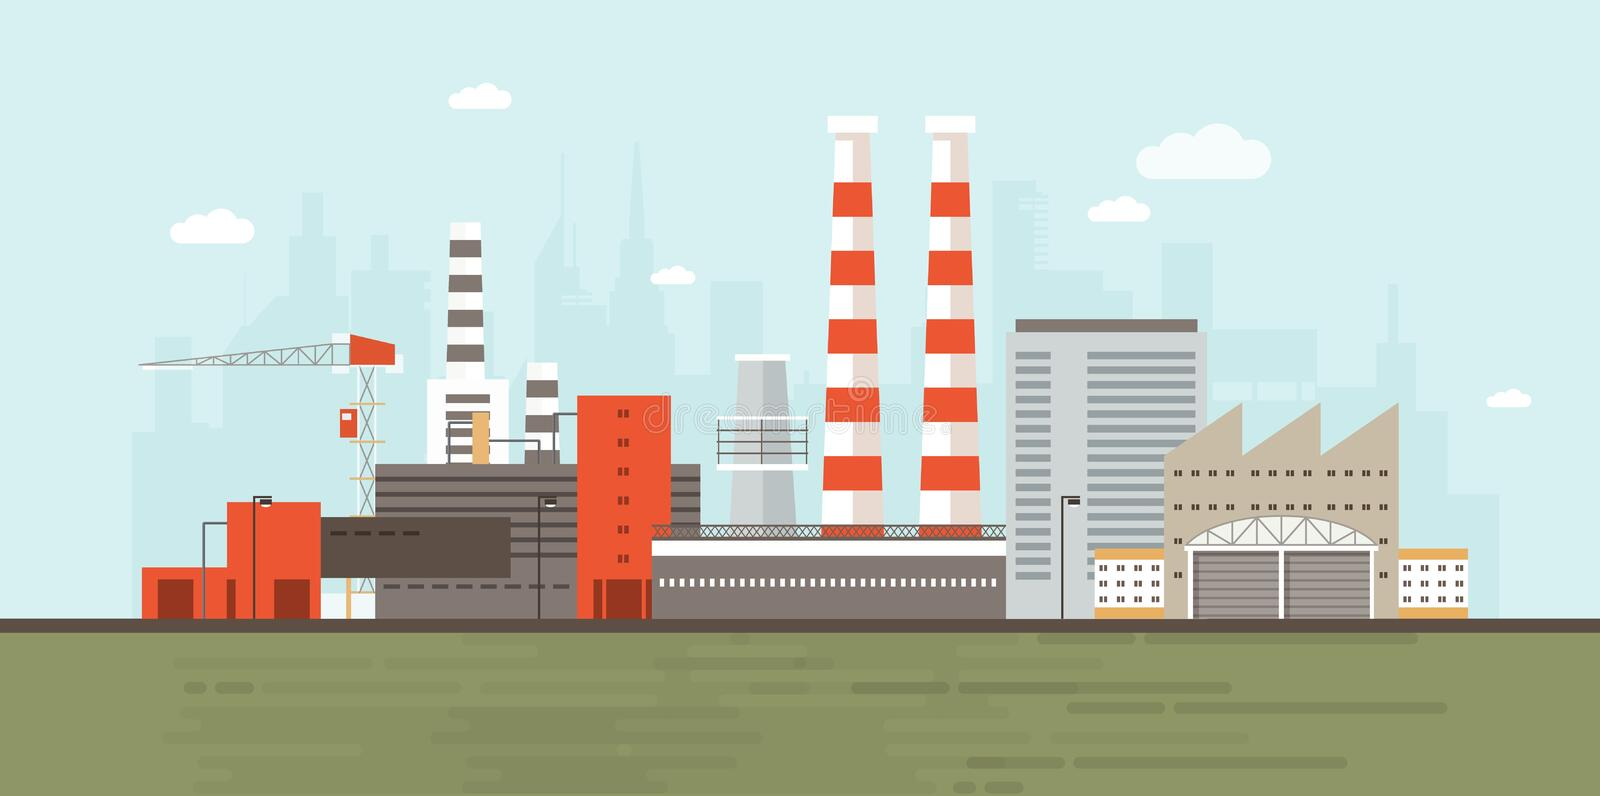 Industrial park or zone with factory buildings, manufacturing structures, power plants, warehouses, cooling towers royalty free illustration